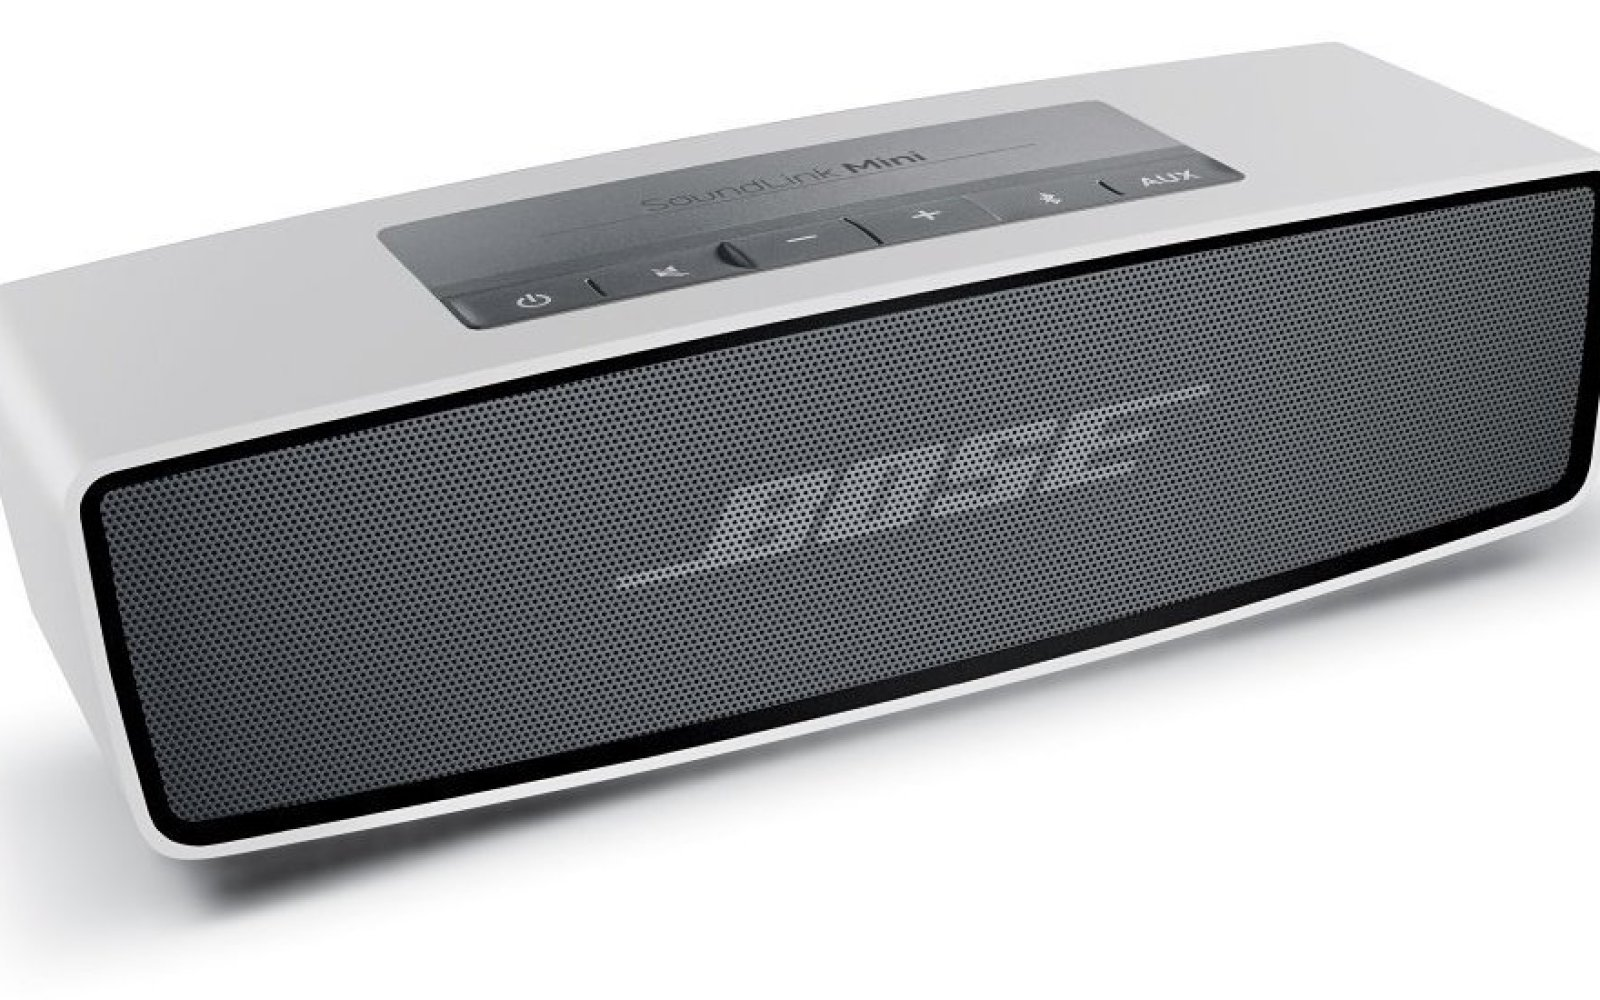 Review: The Bose SoundLink Mini is the best-sounding portable Bluetooth speaker…ever